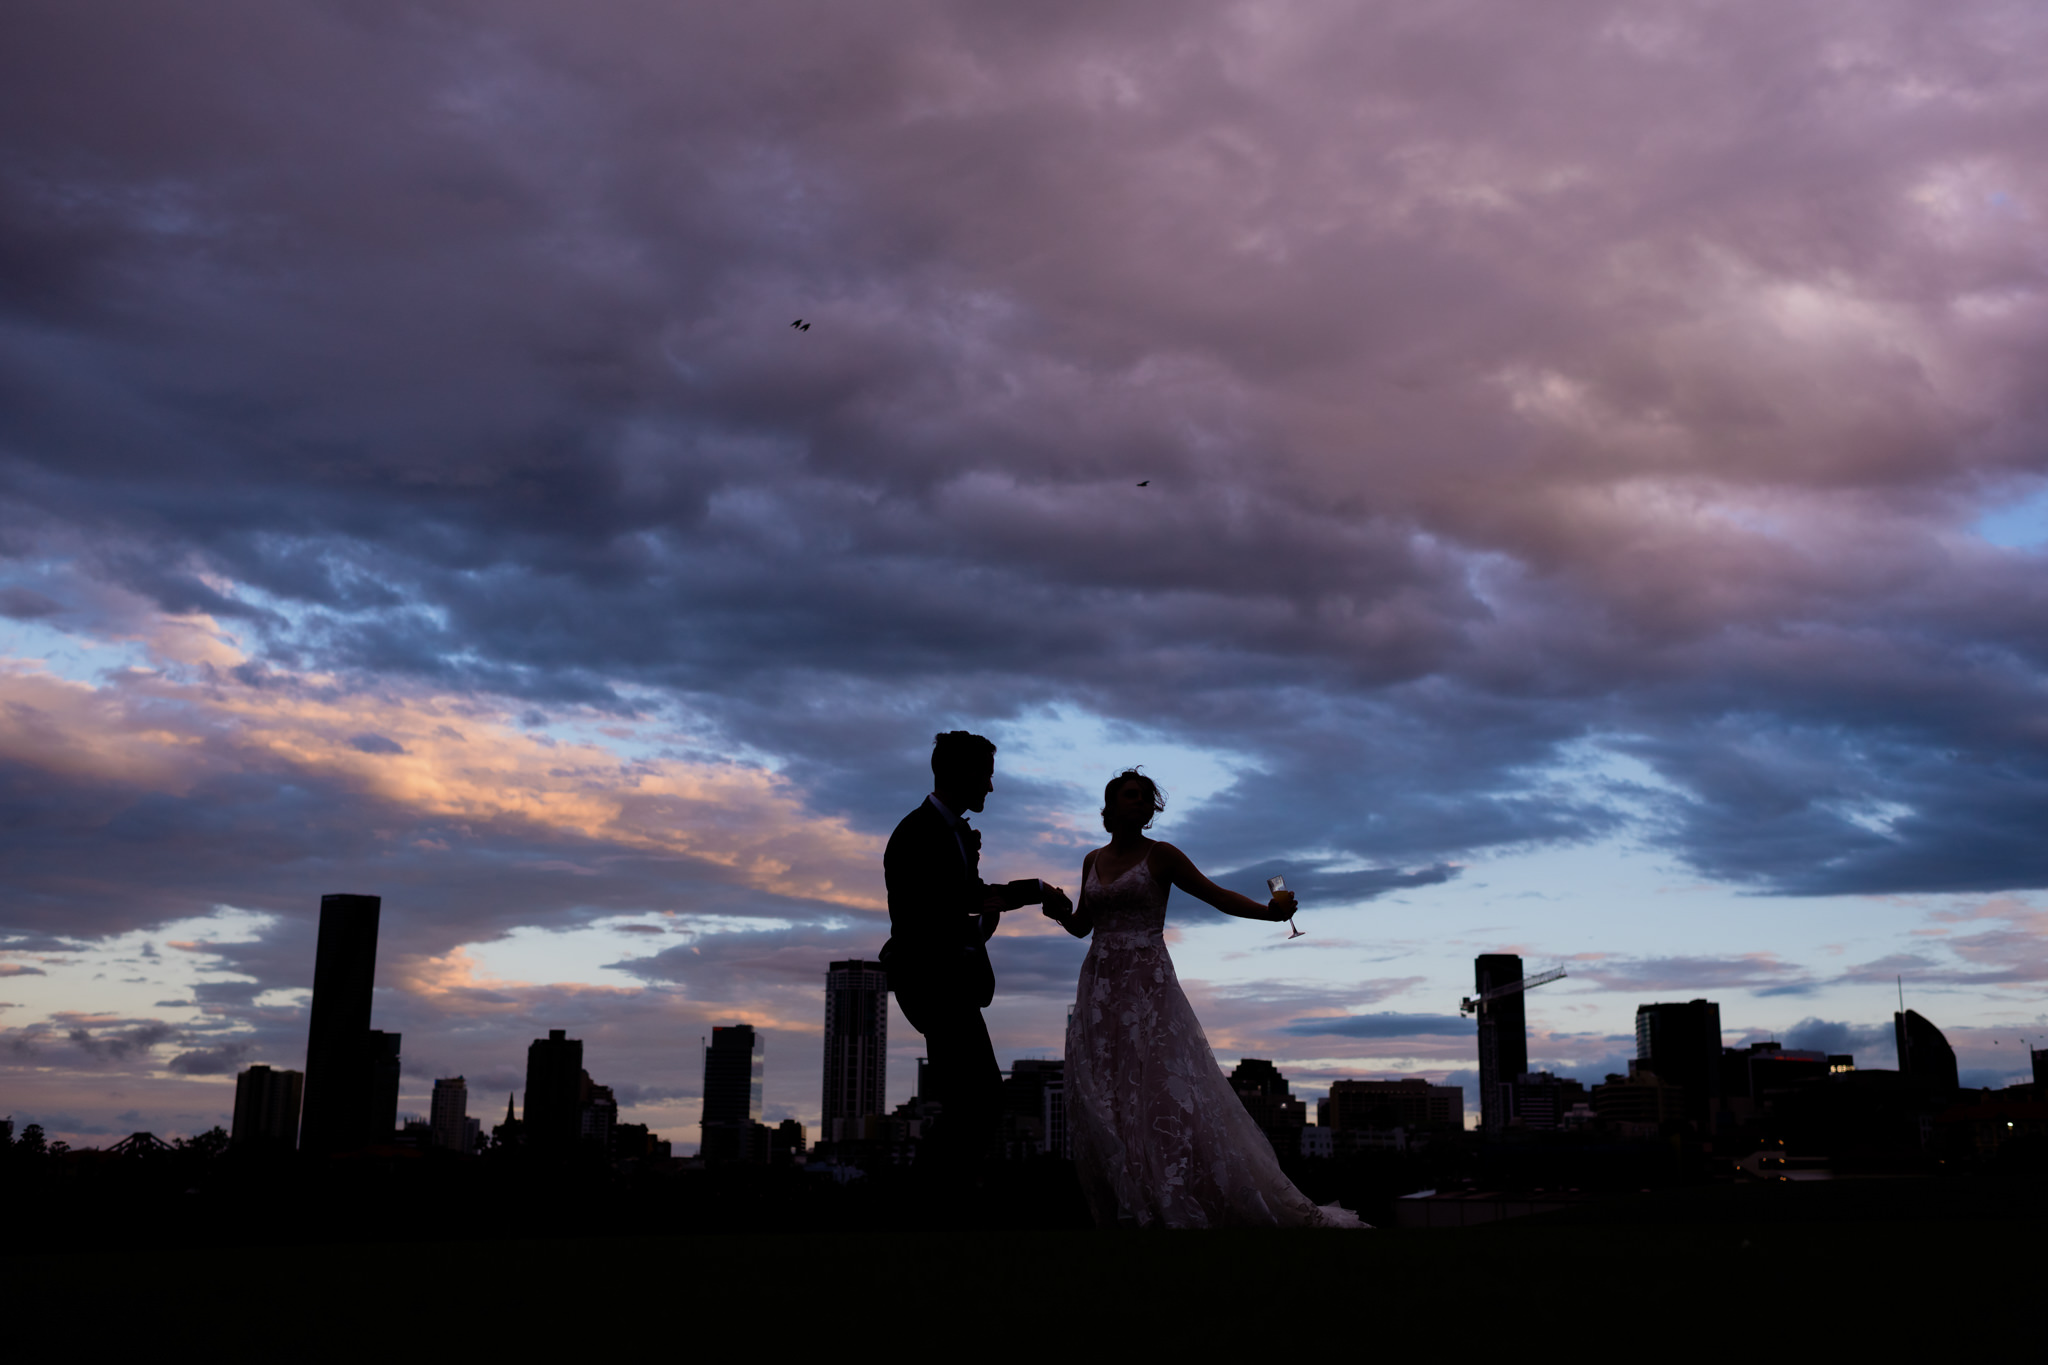 Silhouette of a couple dancing in front of a city skyline under a blue and purple cloudy sky